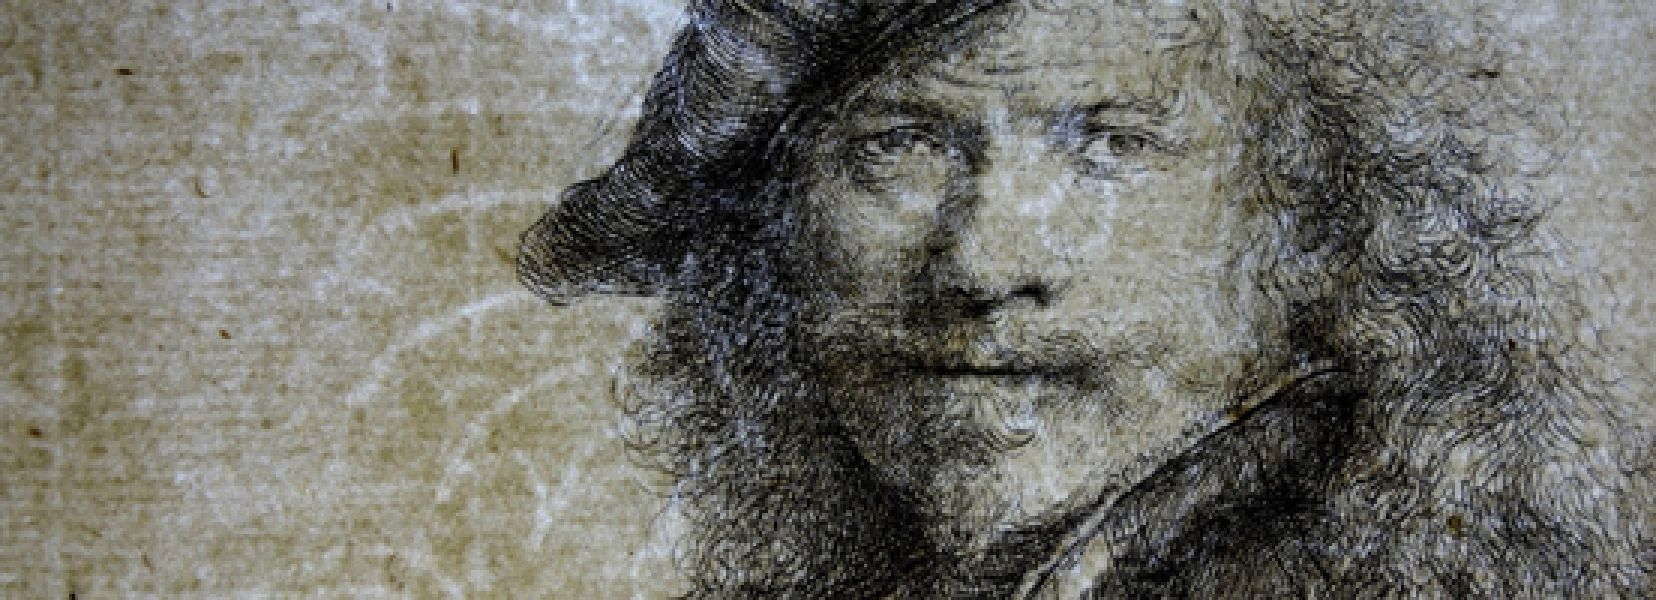 Rembrandt Self-Portrait Leaning on a Stone Sill Transmitted light photograph enlarged detail showing Basilisk watermark Yale University Art Gallery